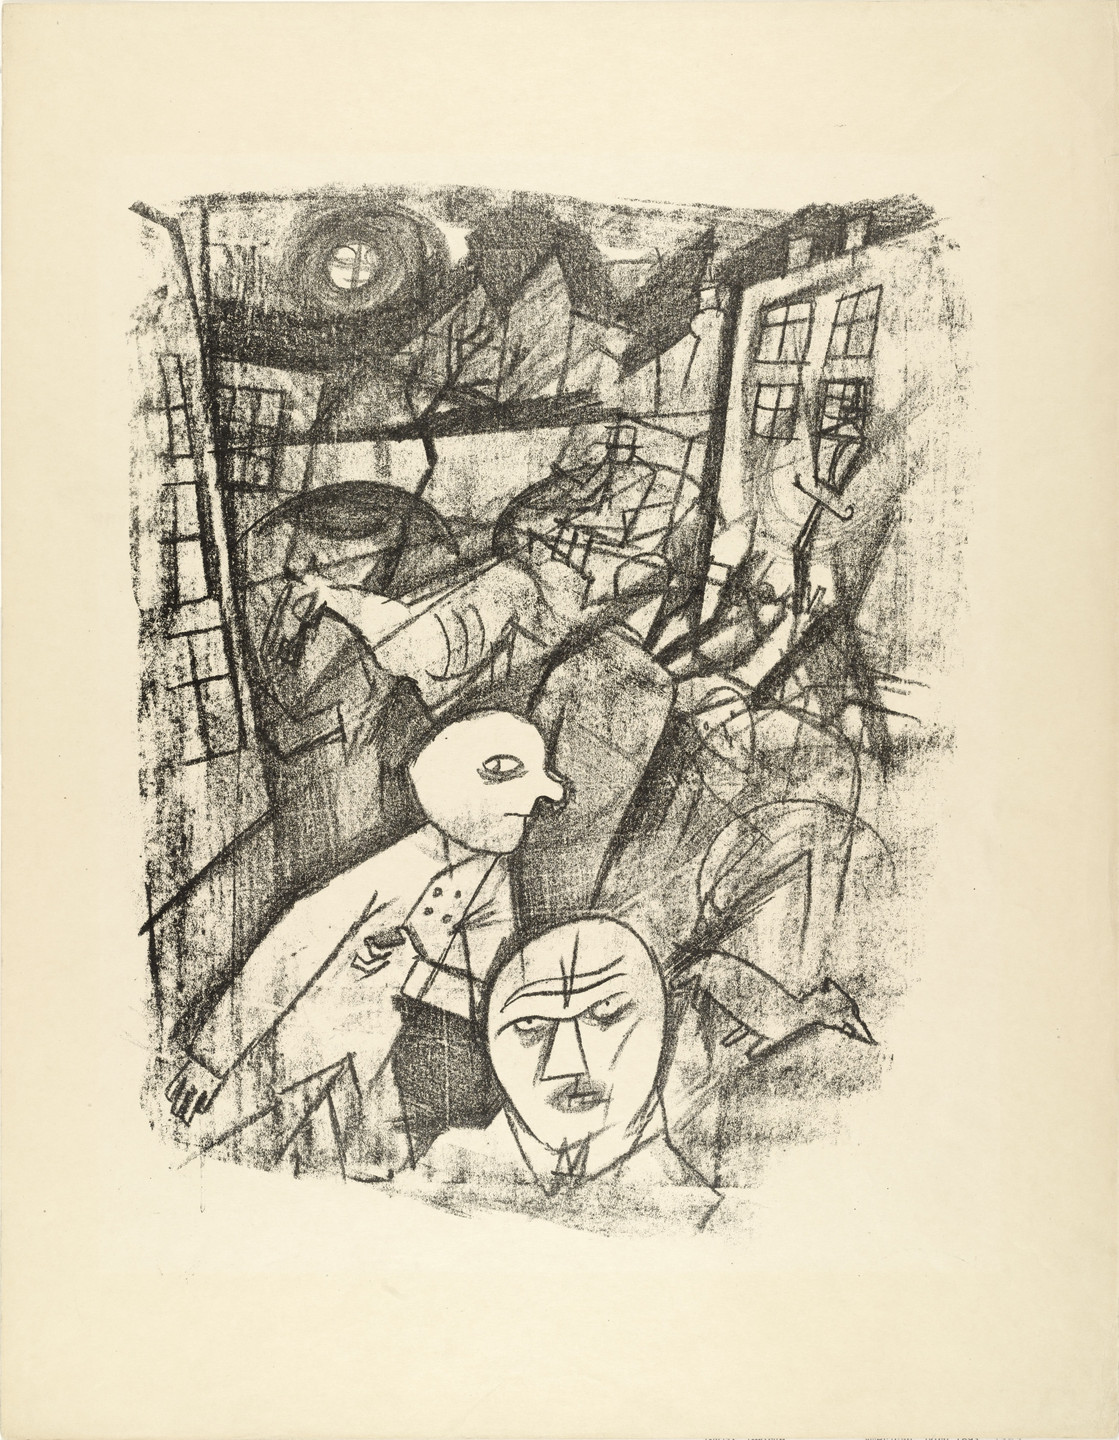 George Grosz. Moonlit Night (Mondnacht) from The First George Grosz Portfolio (Erste George Grosz-Mappe). 1915–16, published 1916–17